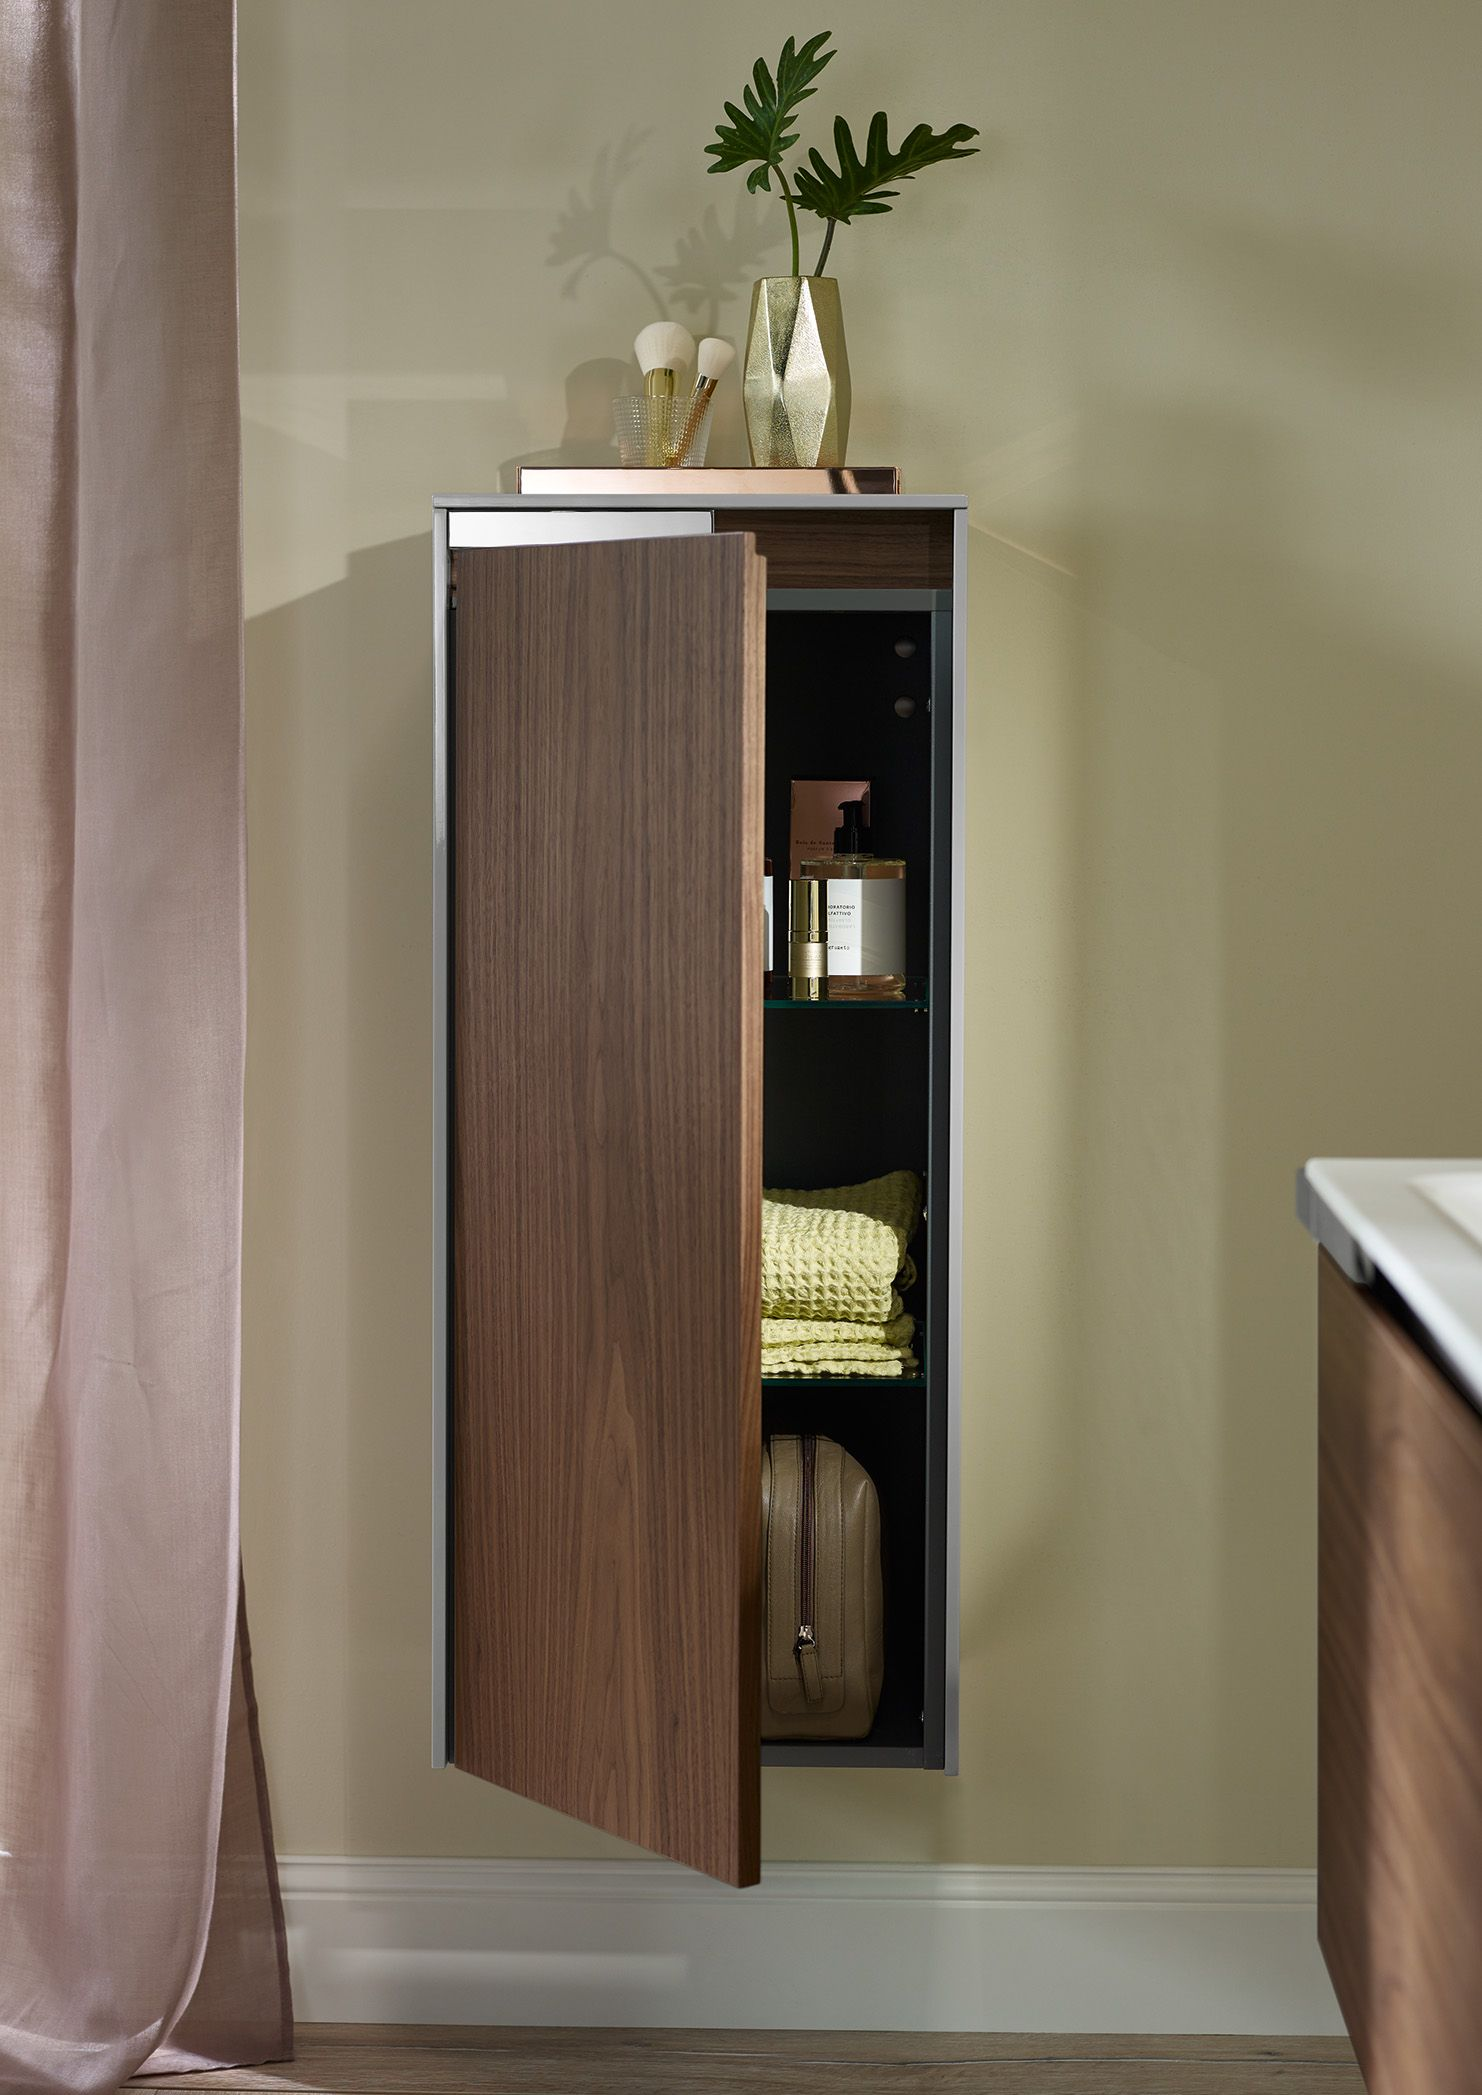 Burgbad Yso Yso S Half Height Cabinets Also Feature The Style Defining Chrome Elements A Convenient Handle And Generously Sized Bad Badezimmer Einrichtung